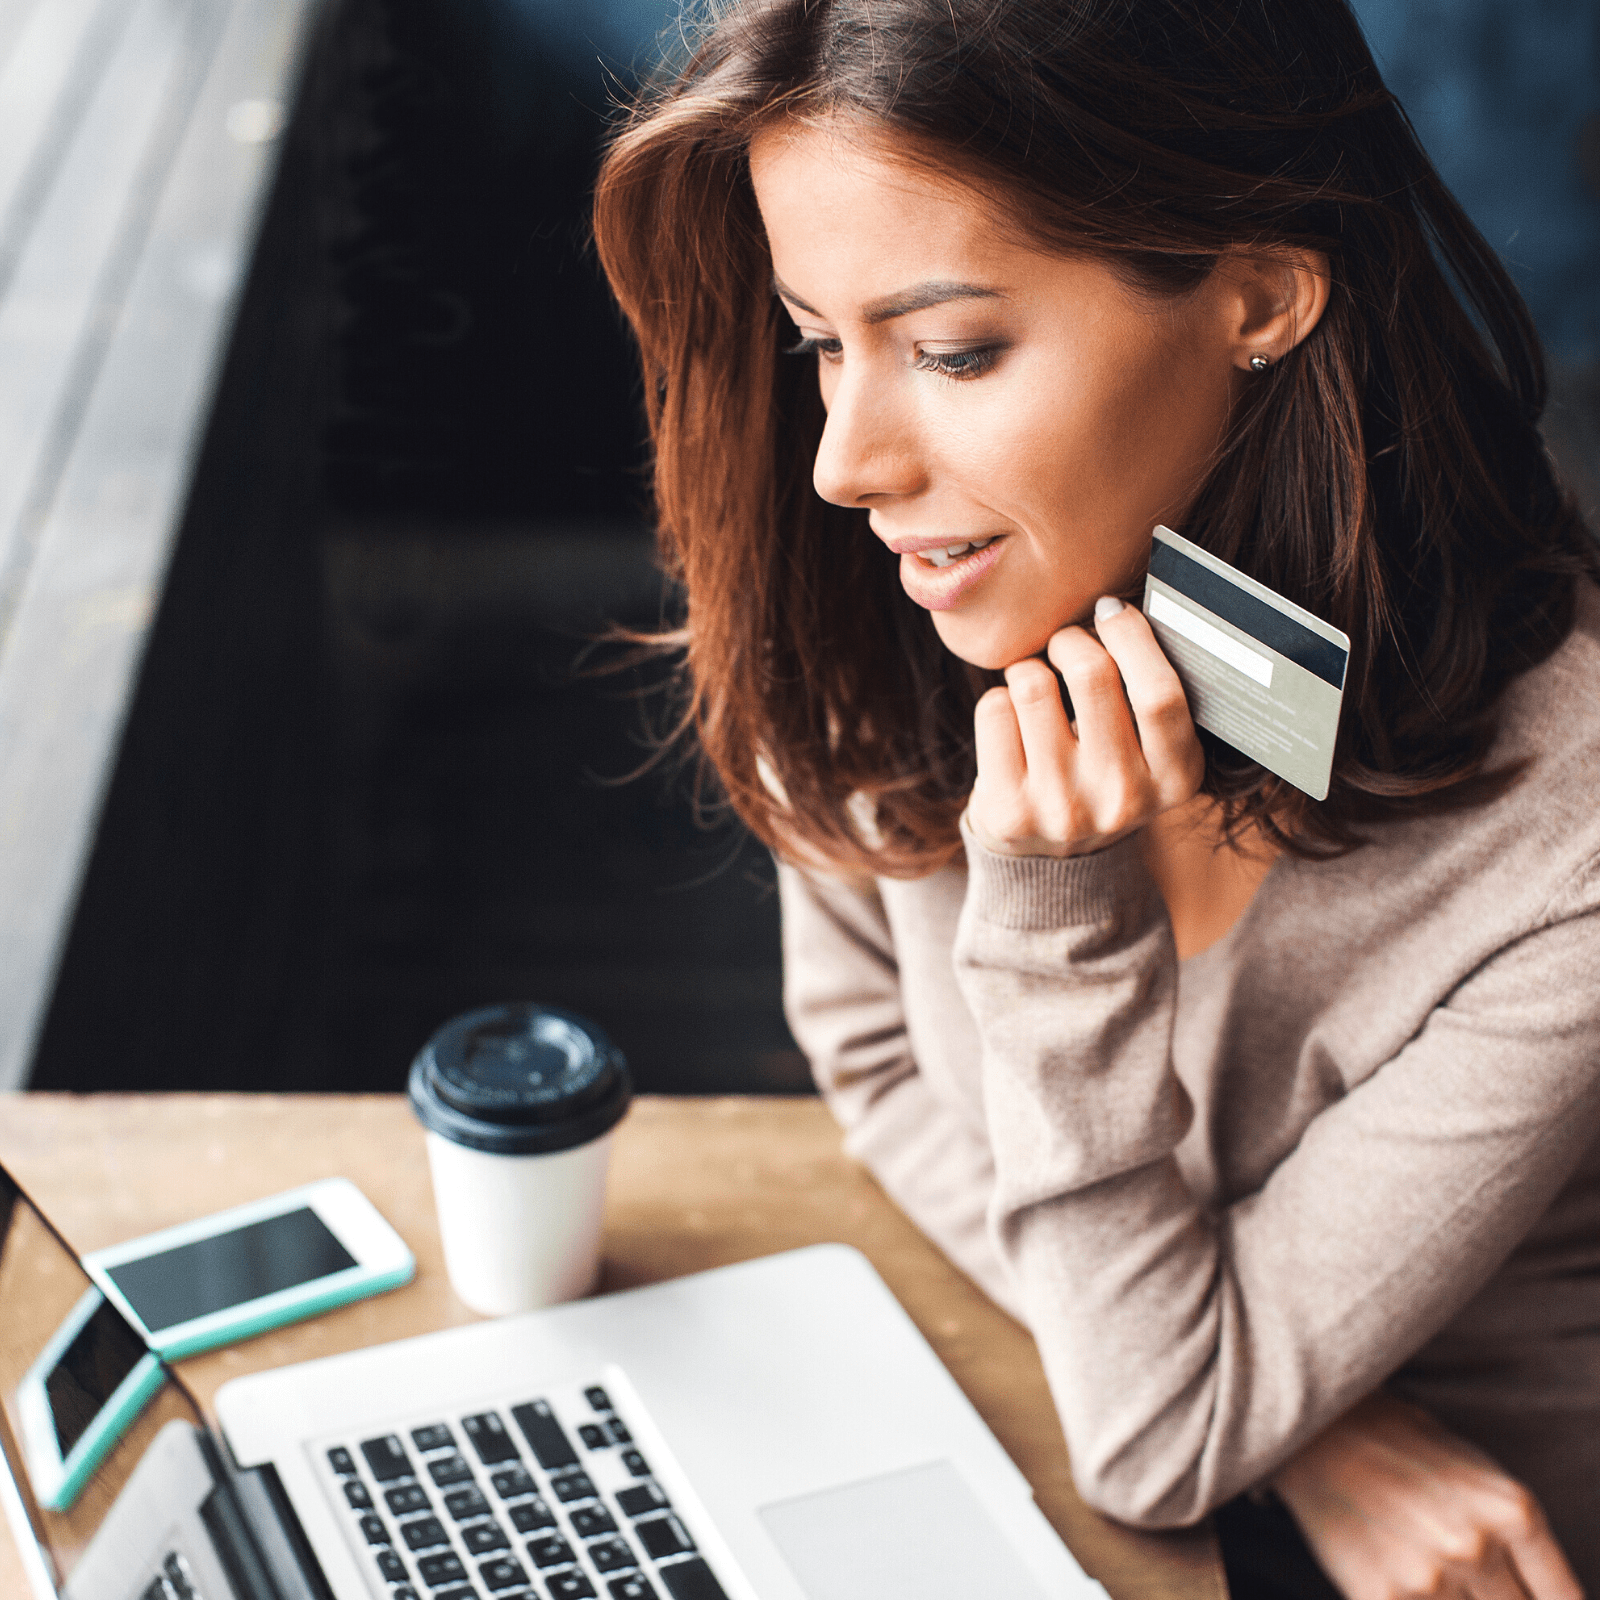 Woman looking at her laptop with credit card in hand